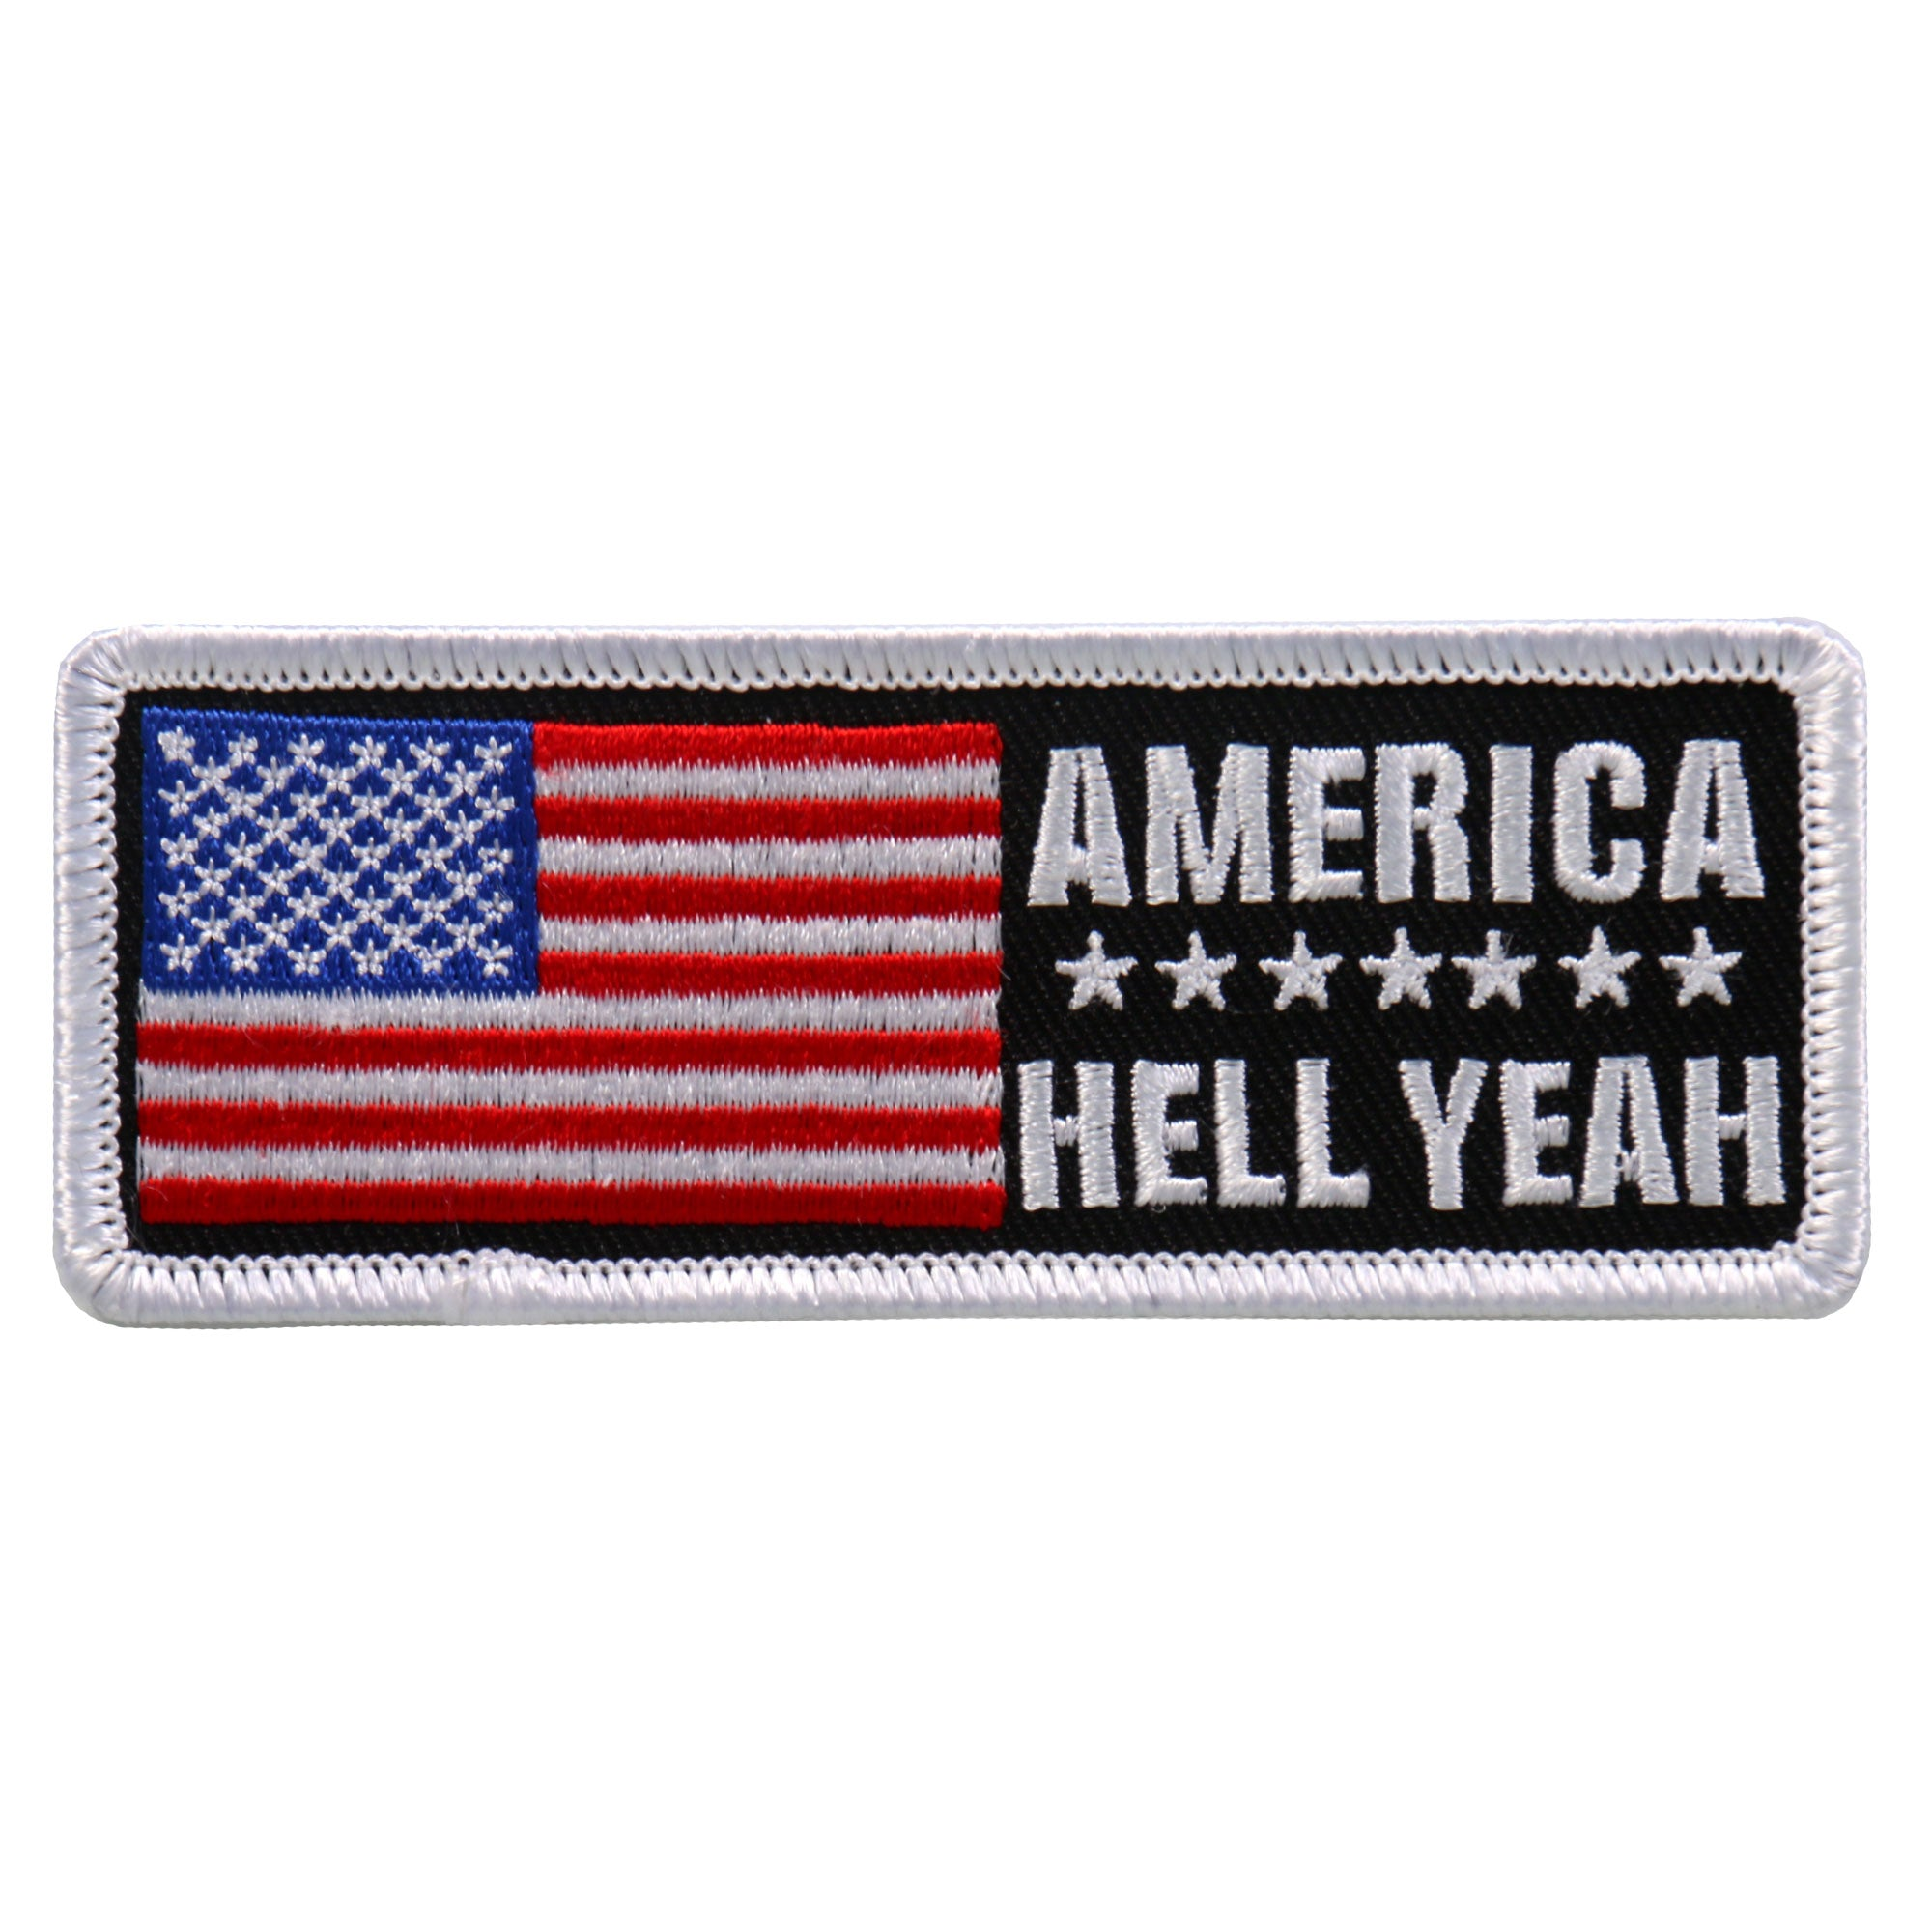 Hot Leathers America Hell Yeah Patch